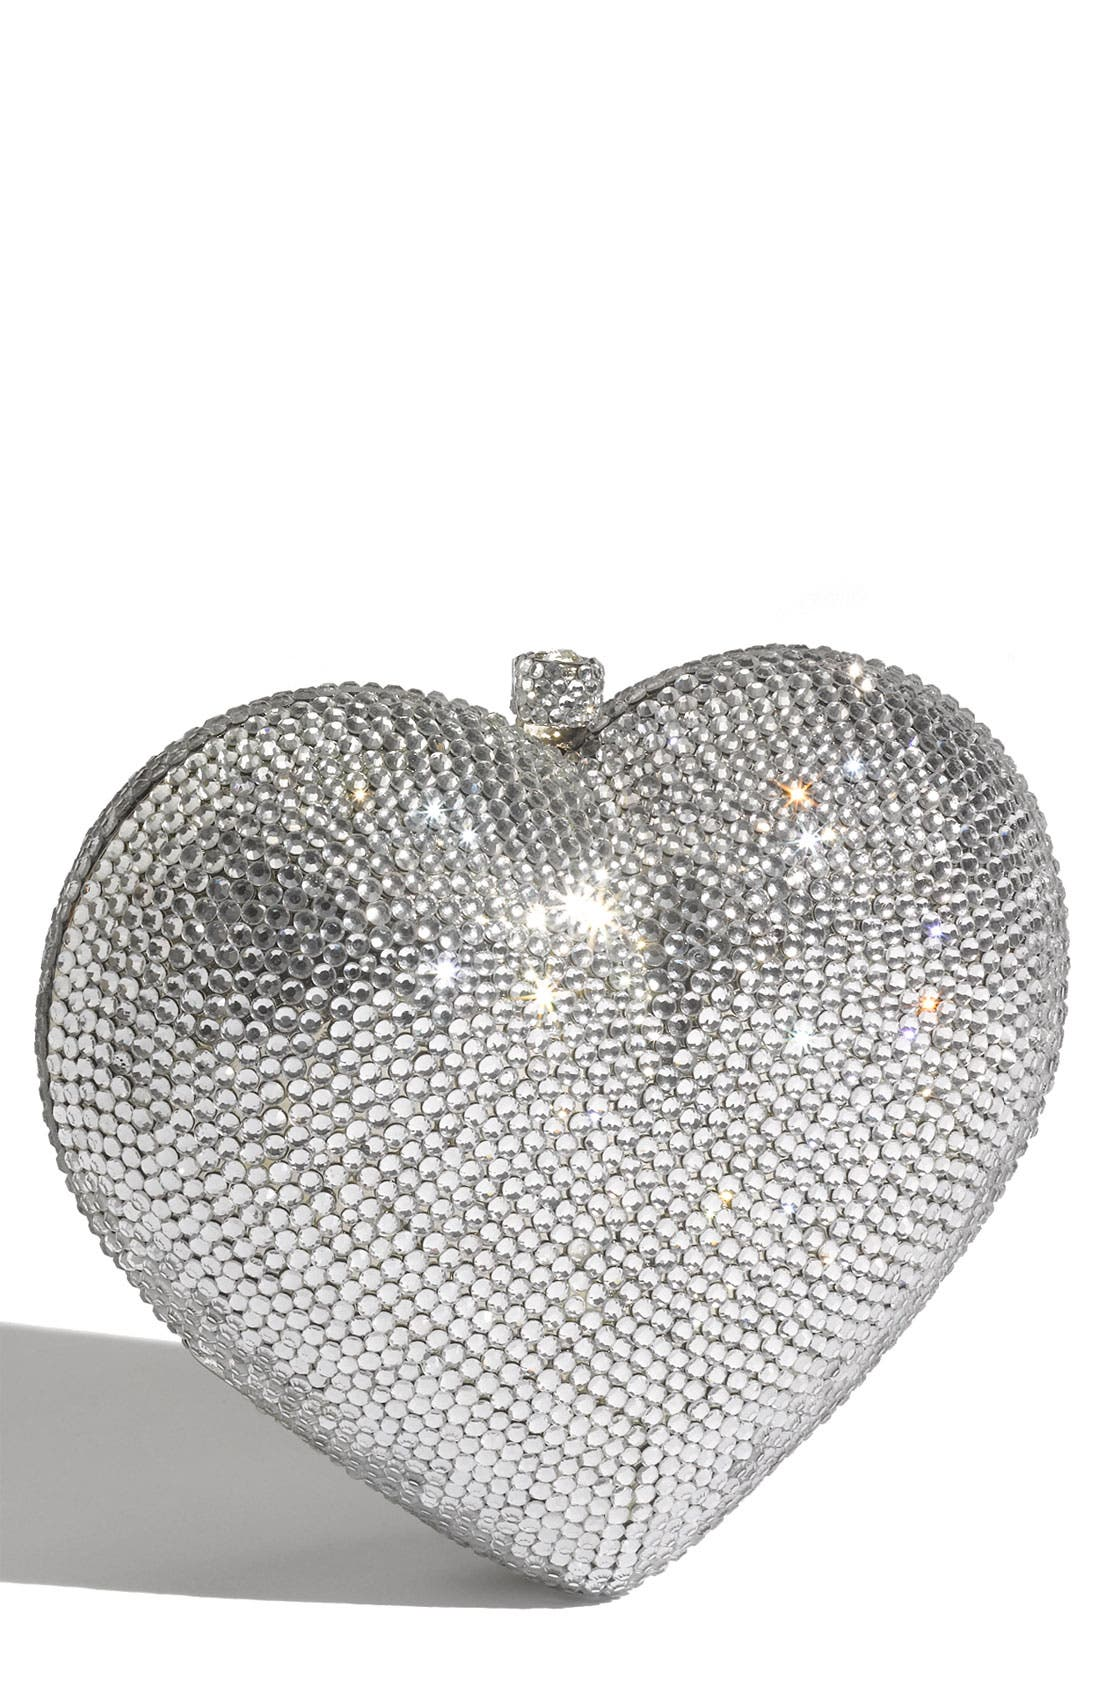 Alternate Image 1 Selected - Tasha 'Heart' Clutch